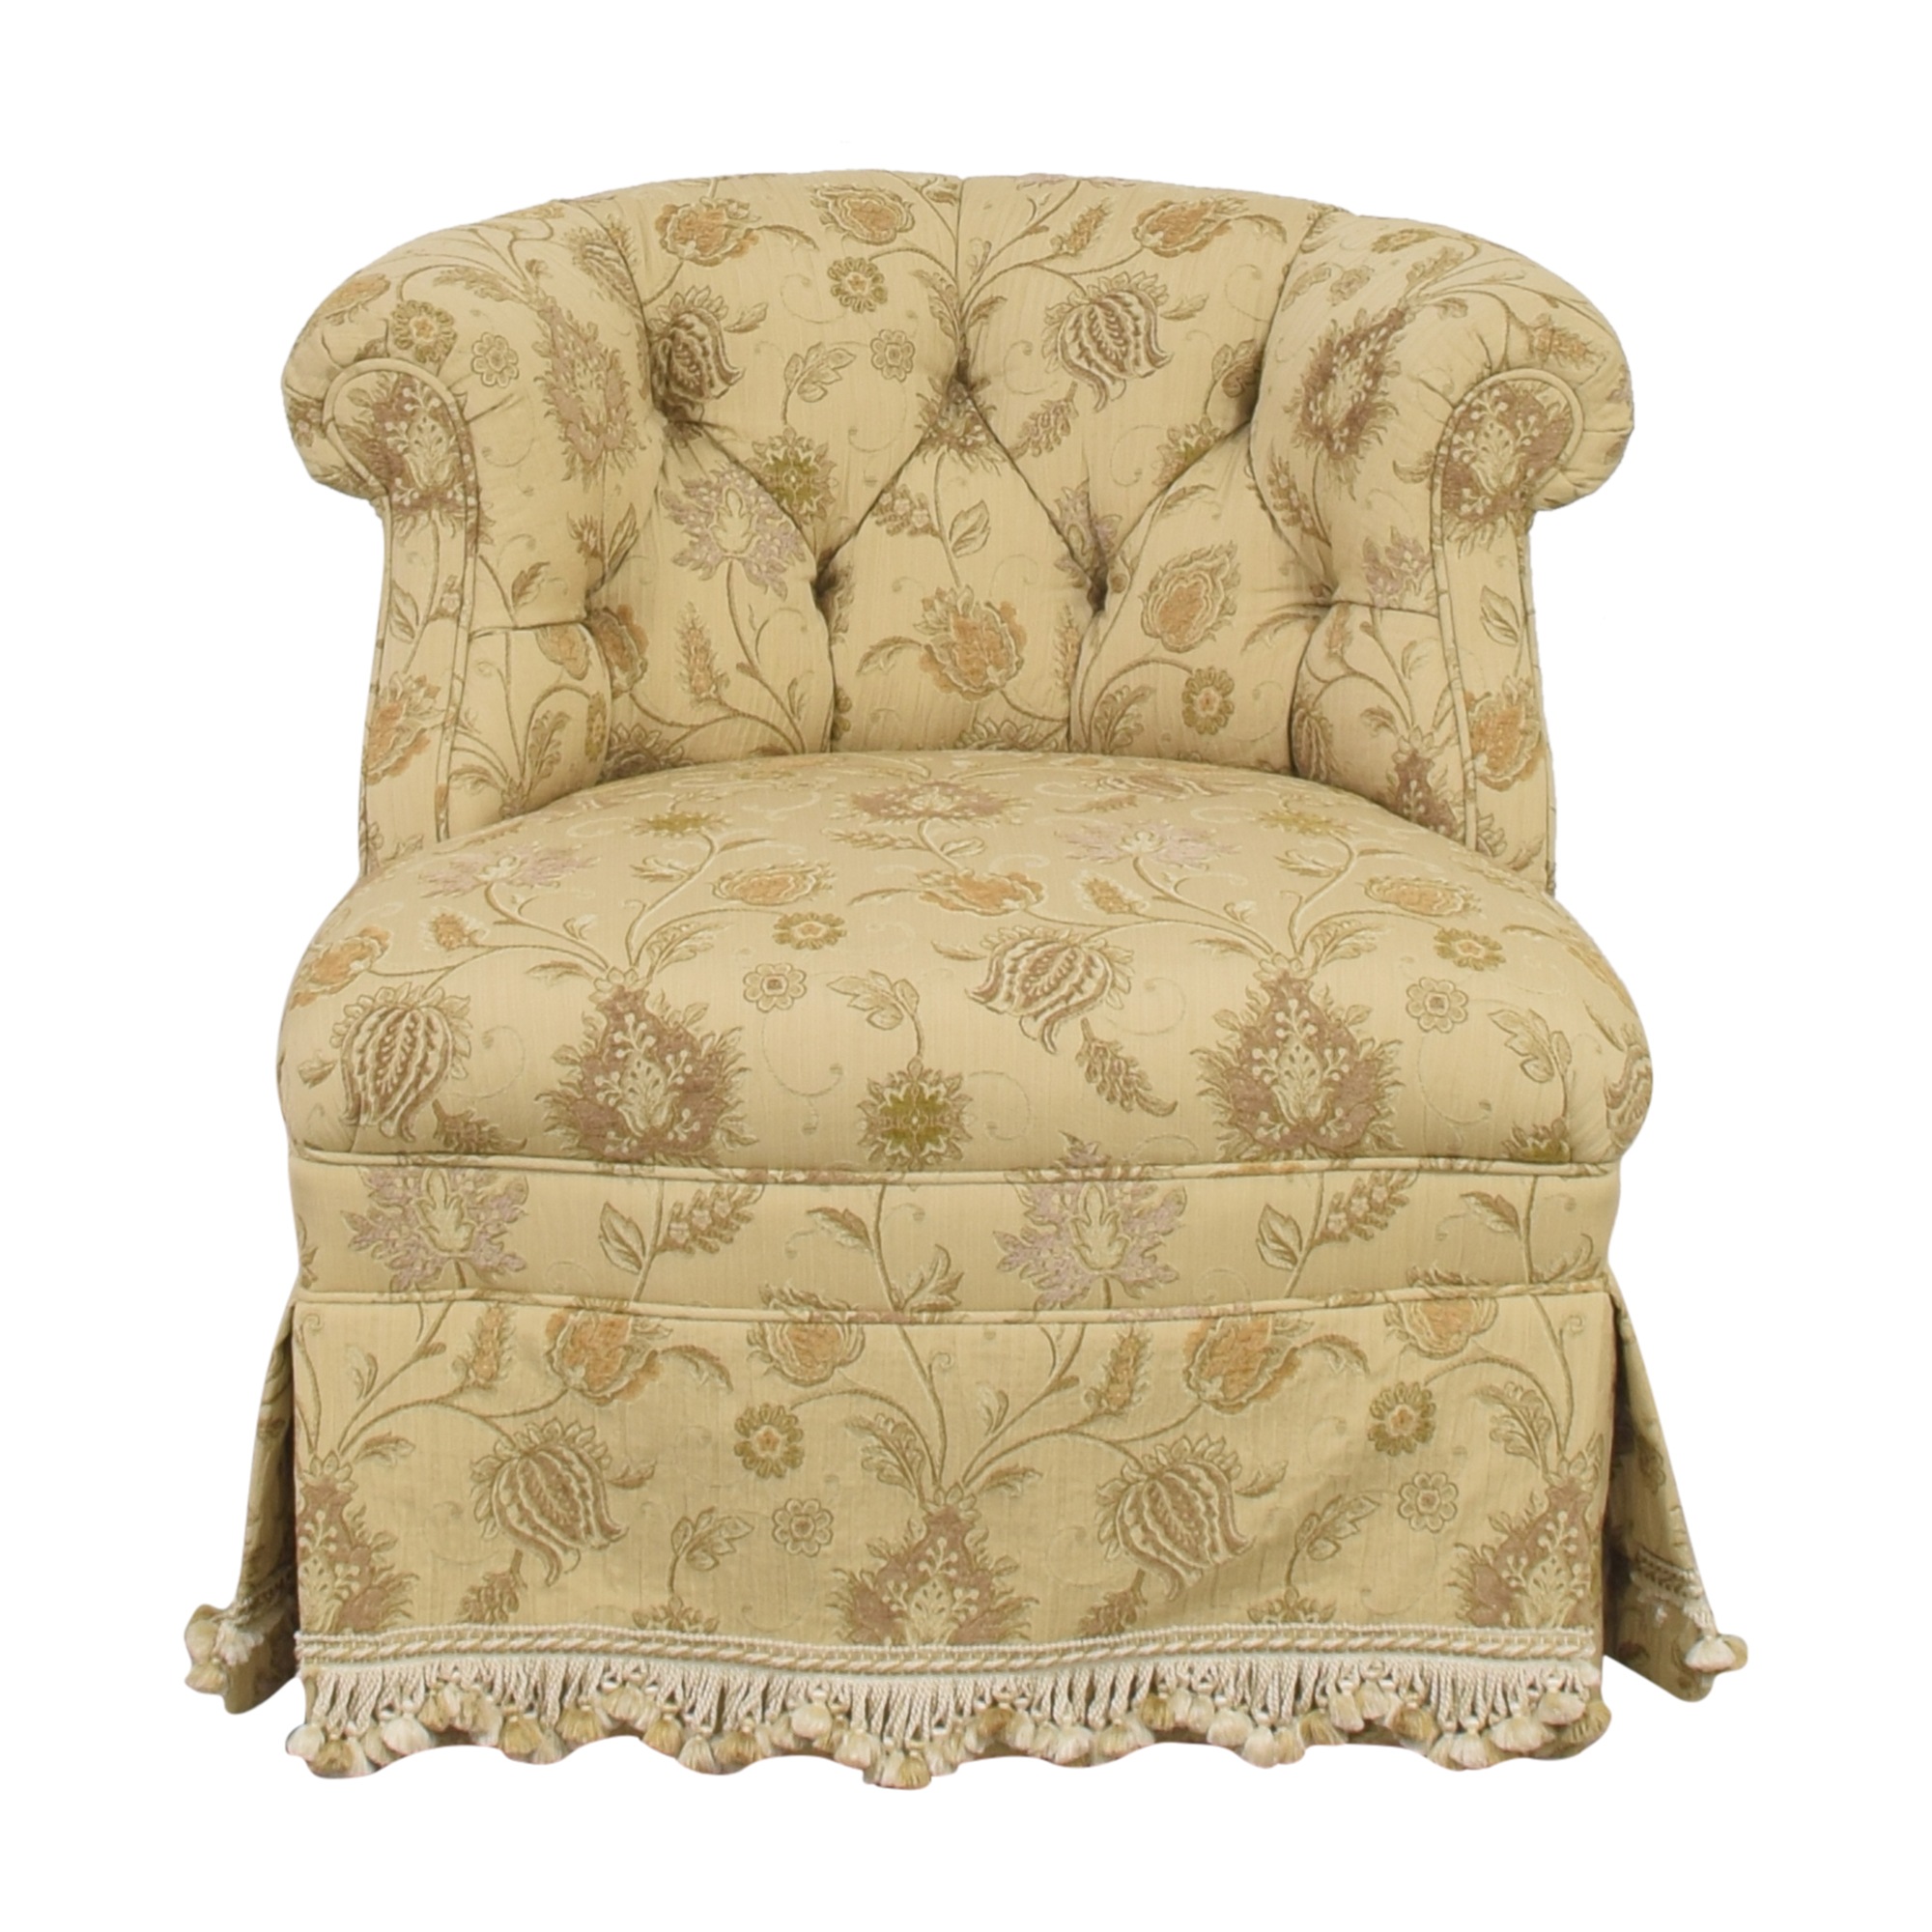 shop Kravet Skirted Accent Chair Kravet Accent Chairs